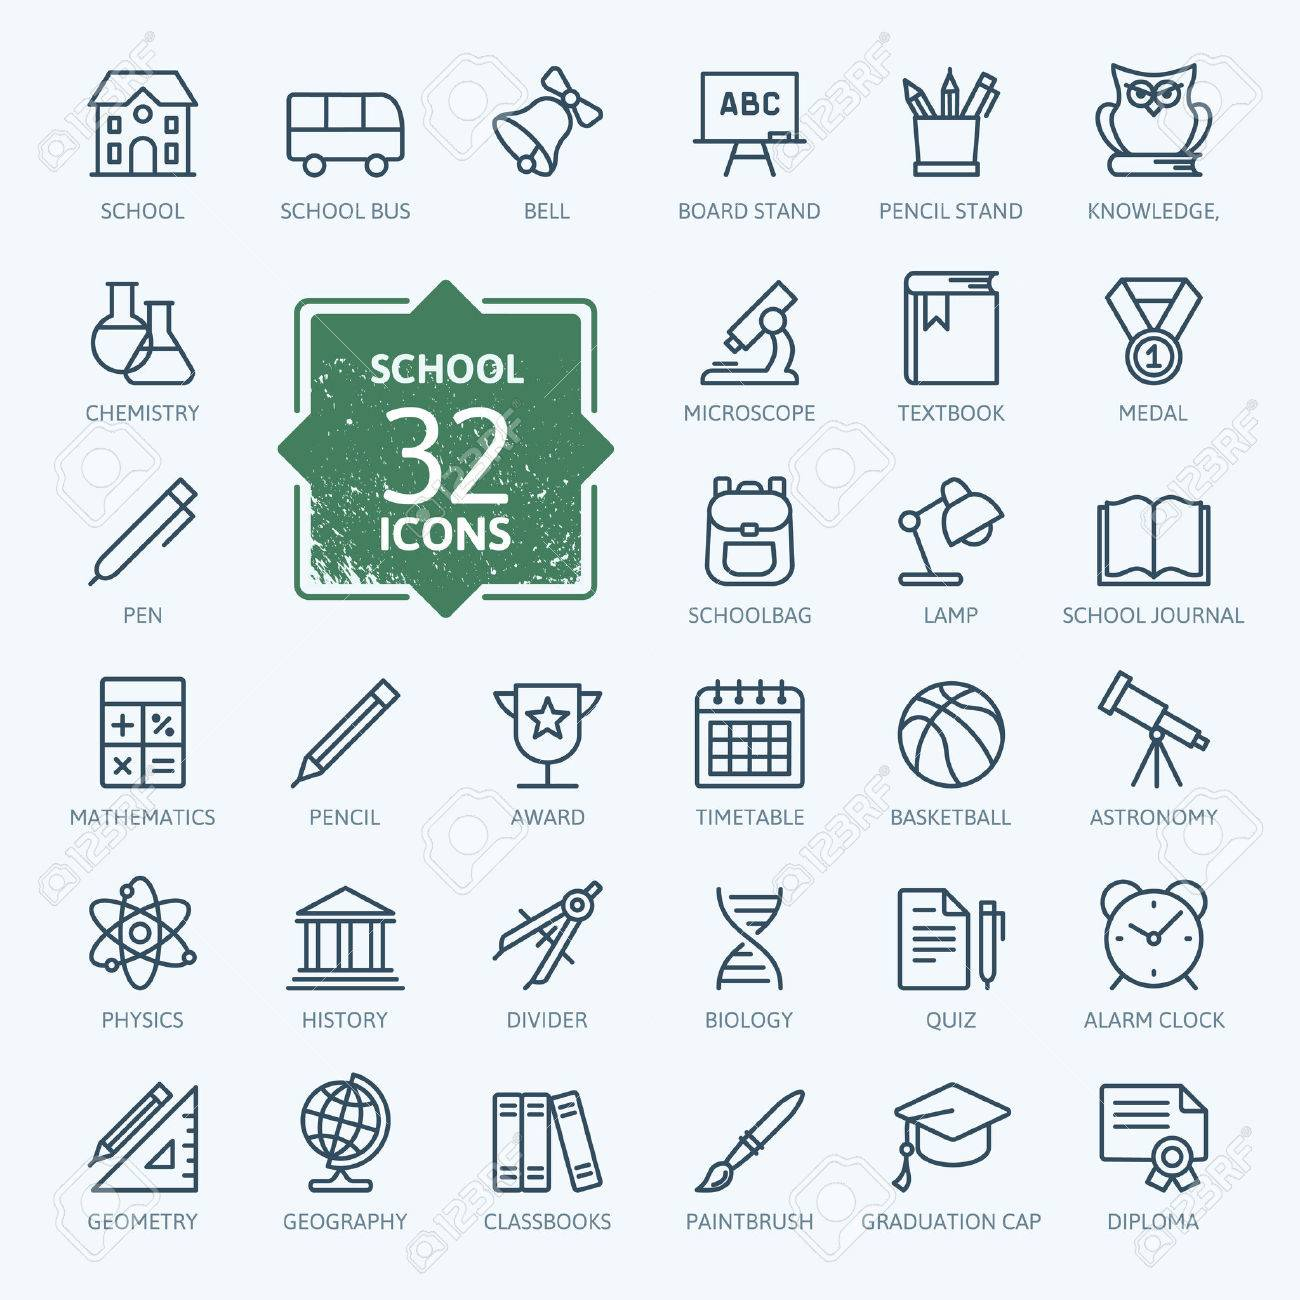 Outline icon collection - School education Stock Vector - 52871106